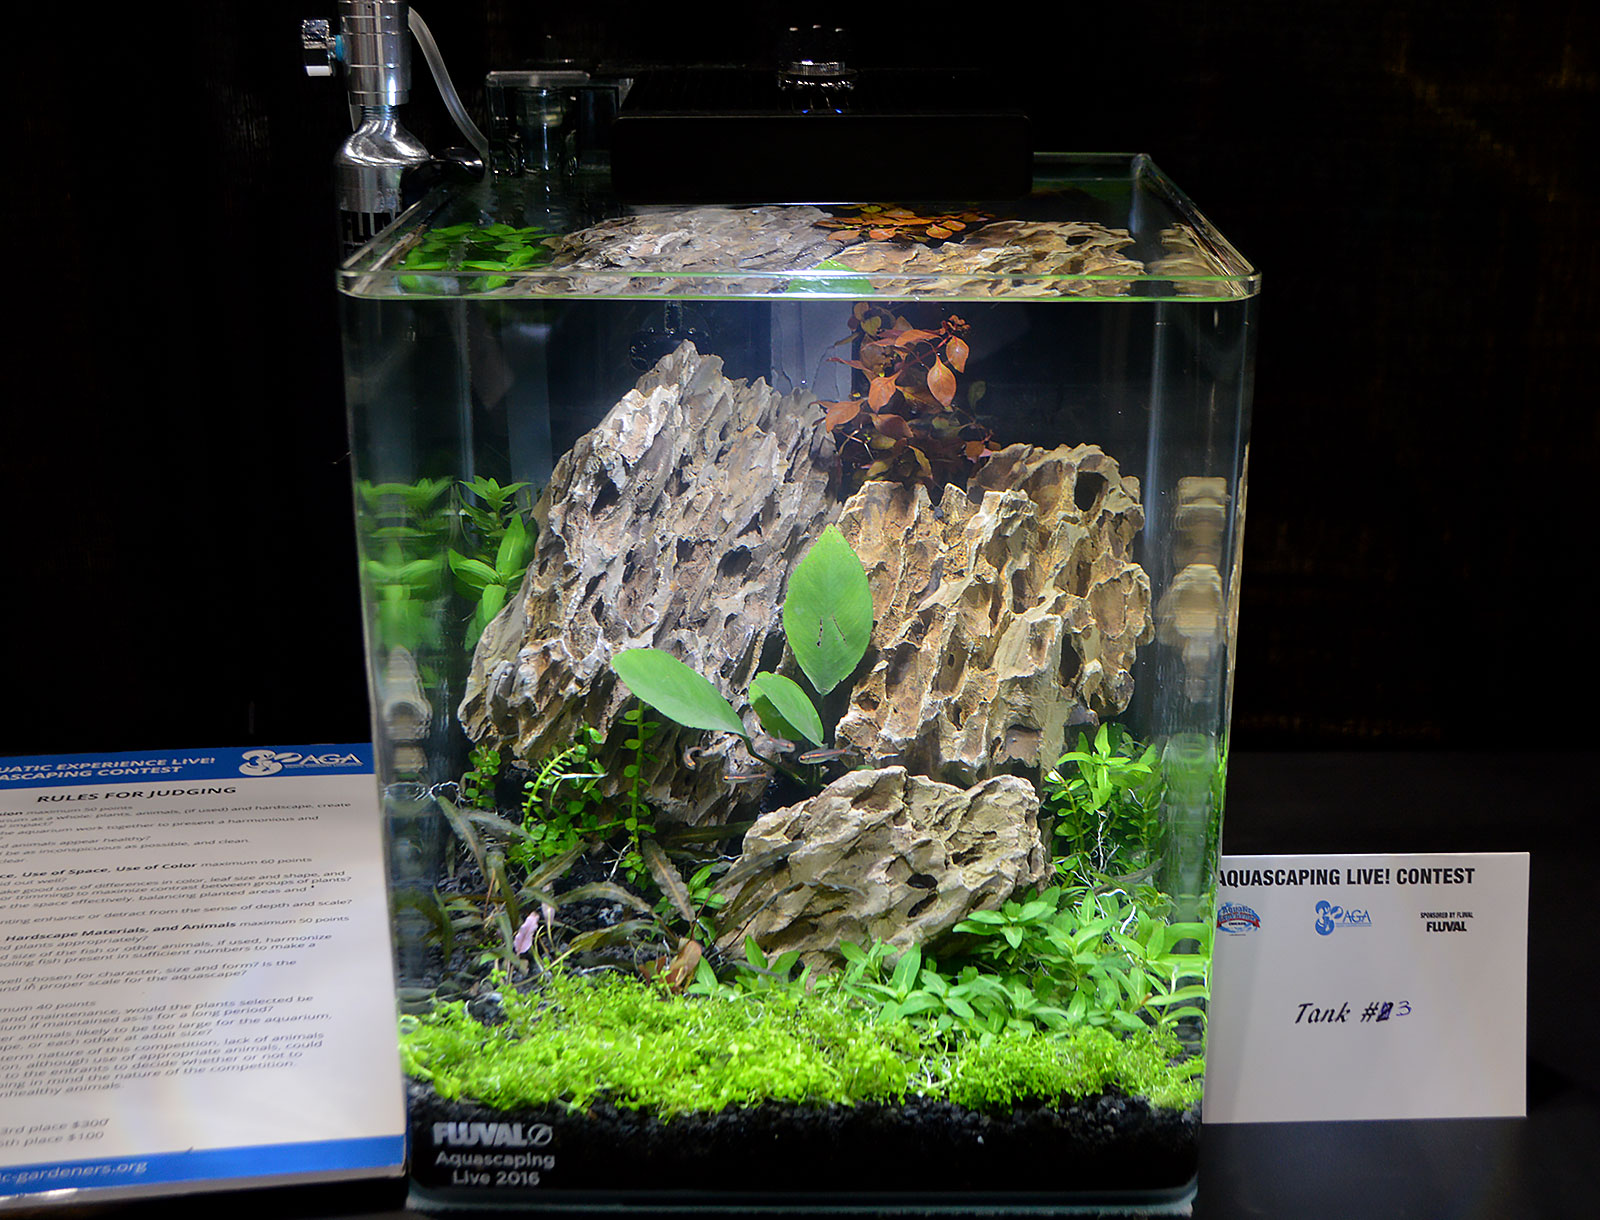 Marvelous AGA Aquascaping Live 2016 Small Tank Entry #3